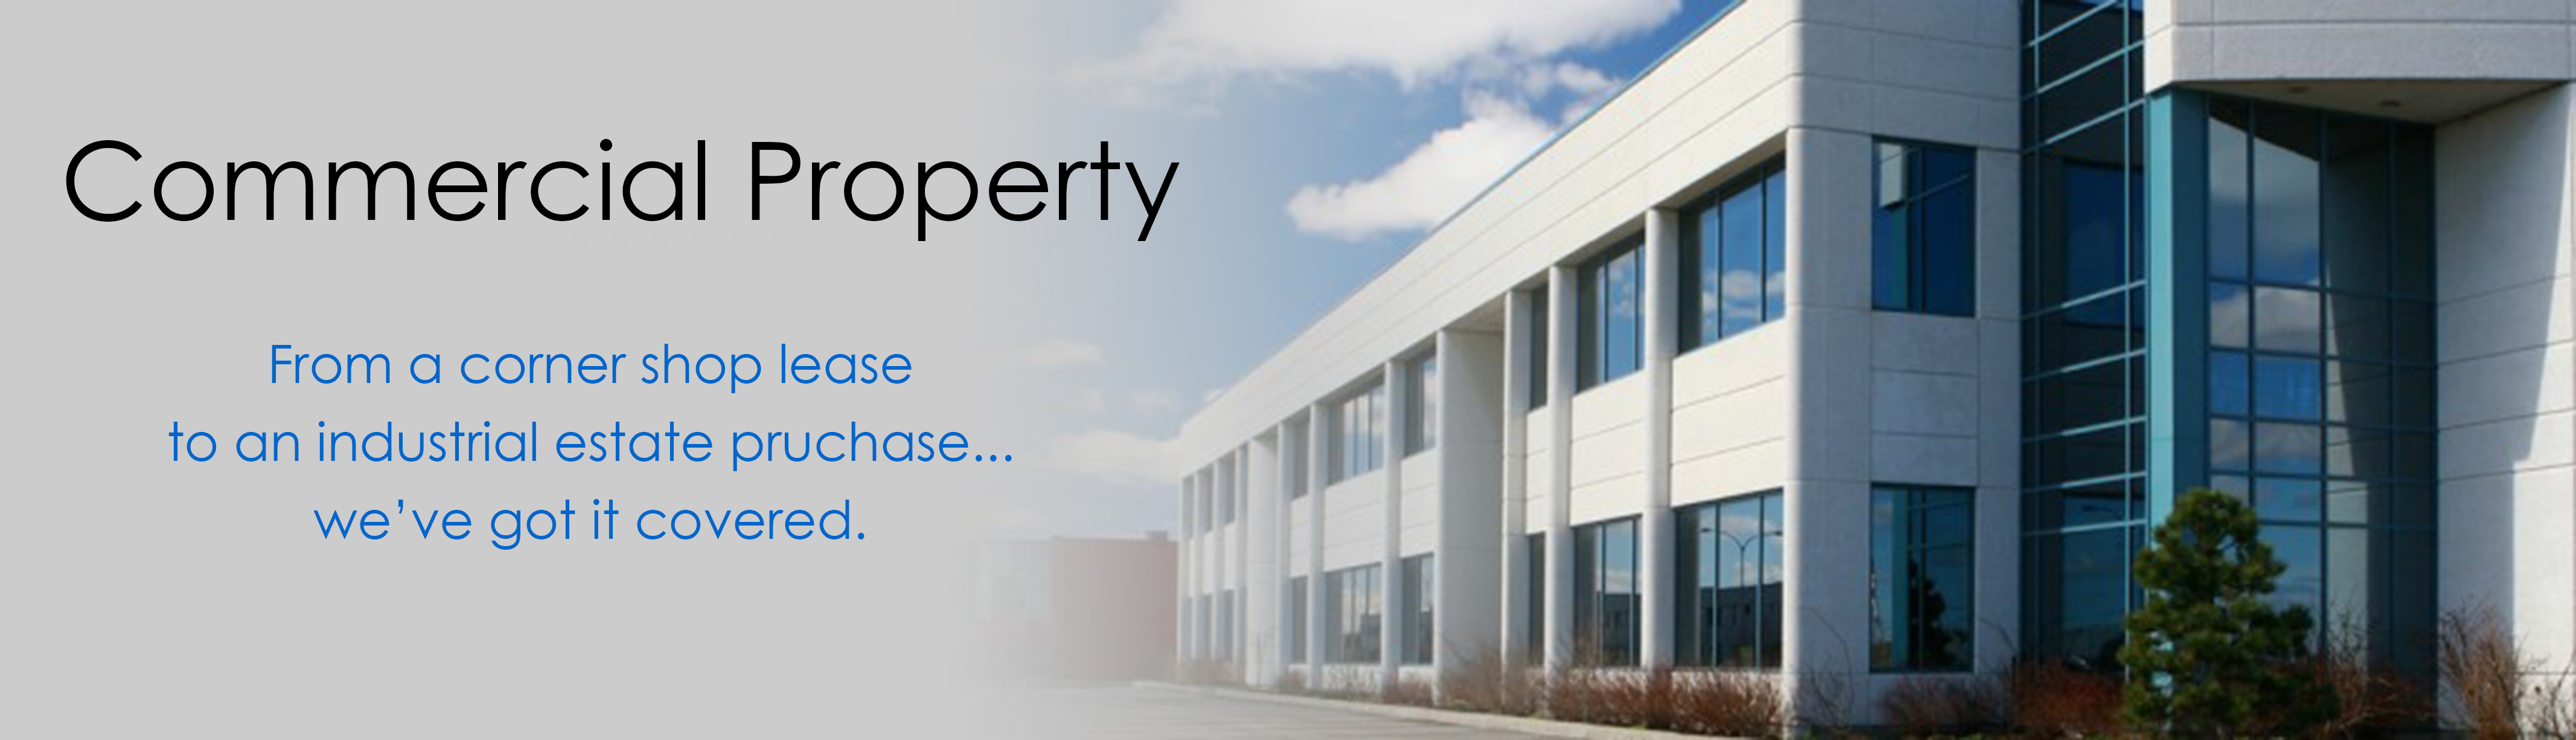 Commercial Property Industrial : Commercial property prh solicitors business